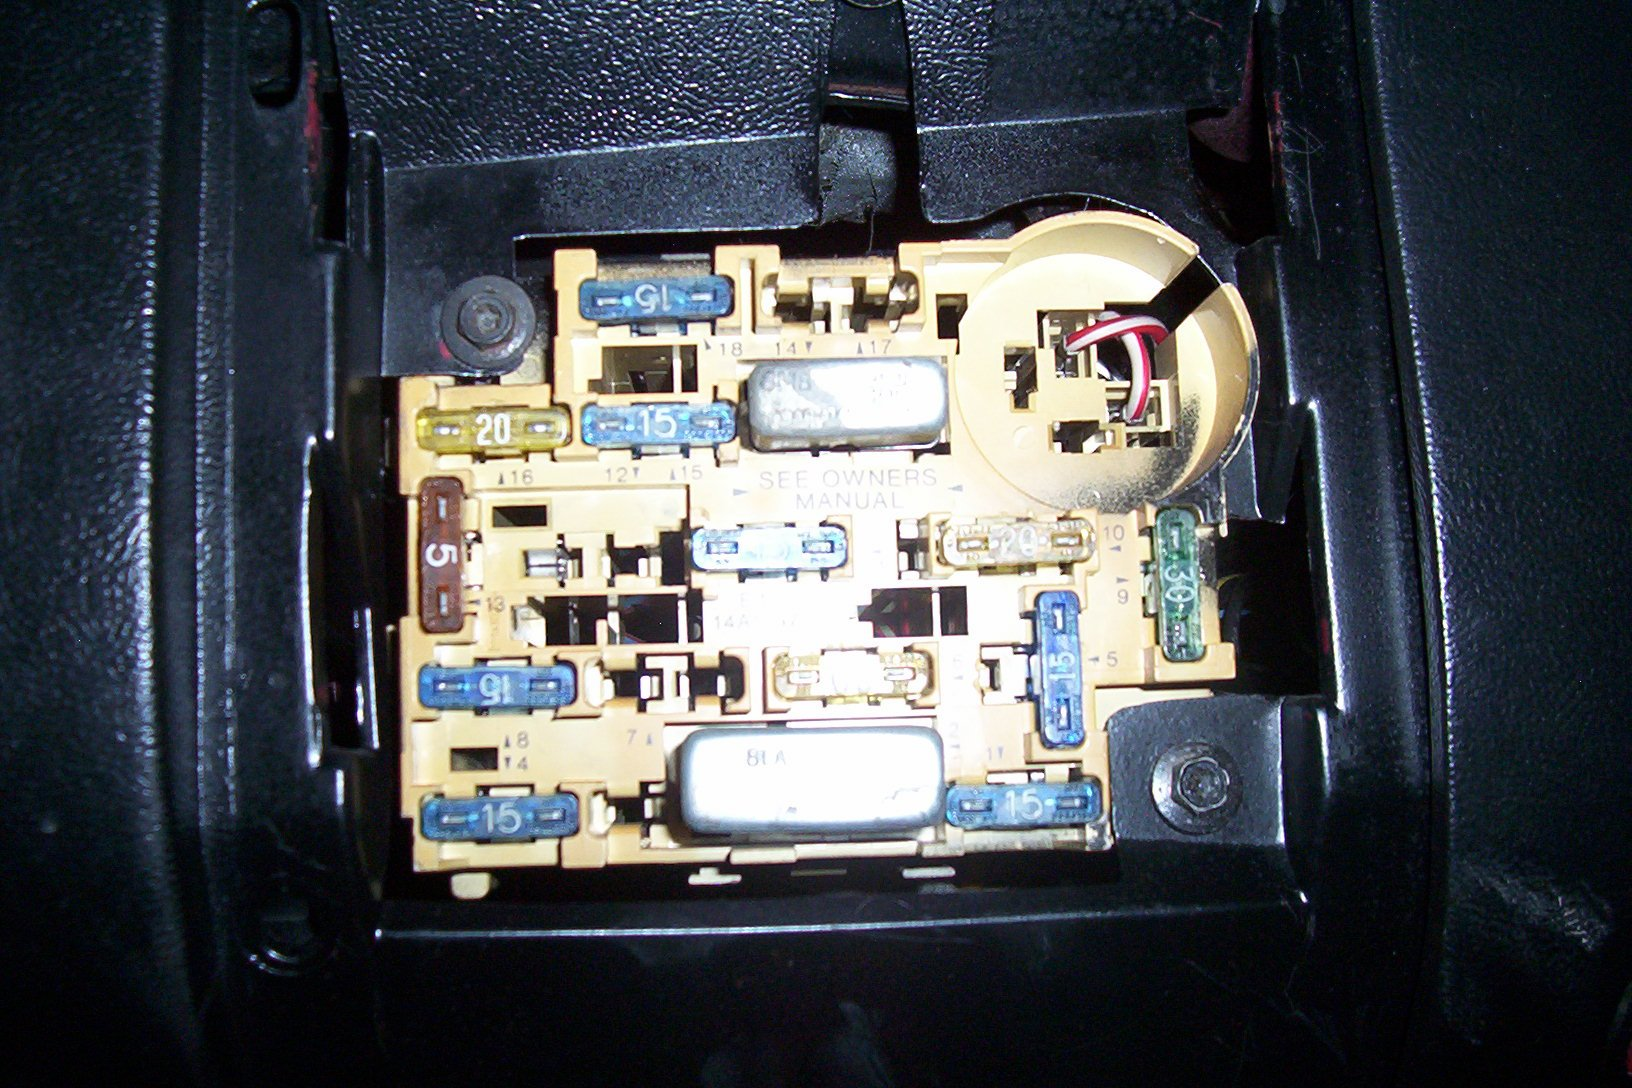 pic needed of 1989 mustang 2 3 fuse box ford mustang forum click image for larger version 100 6487 jpg views 8346 size 435 5